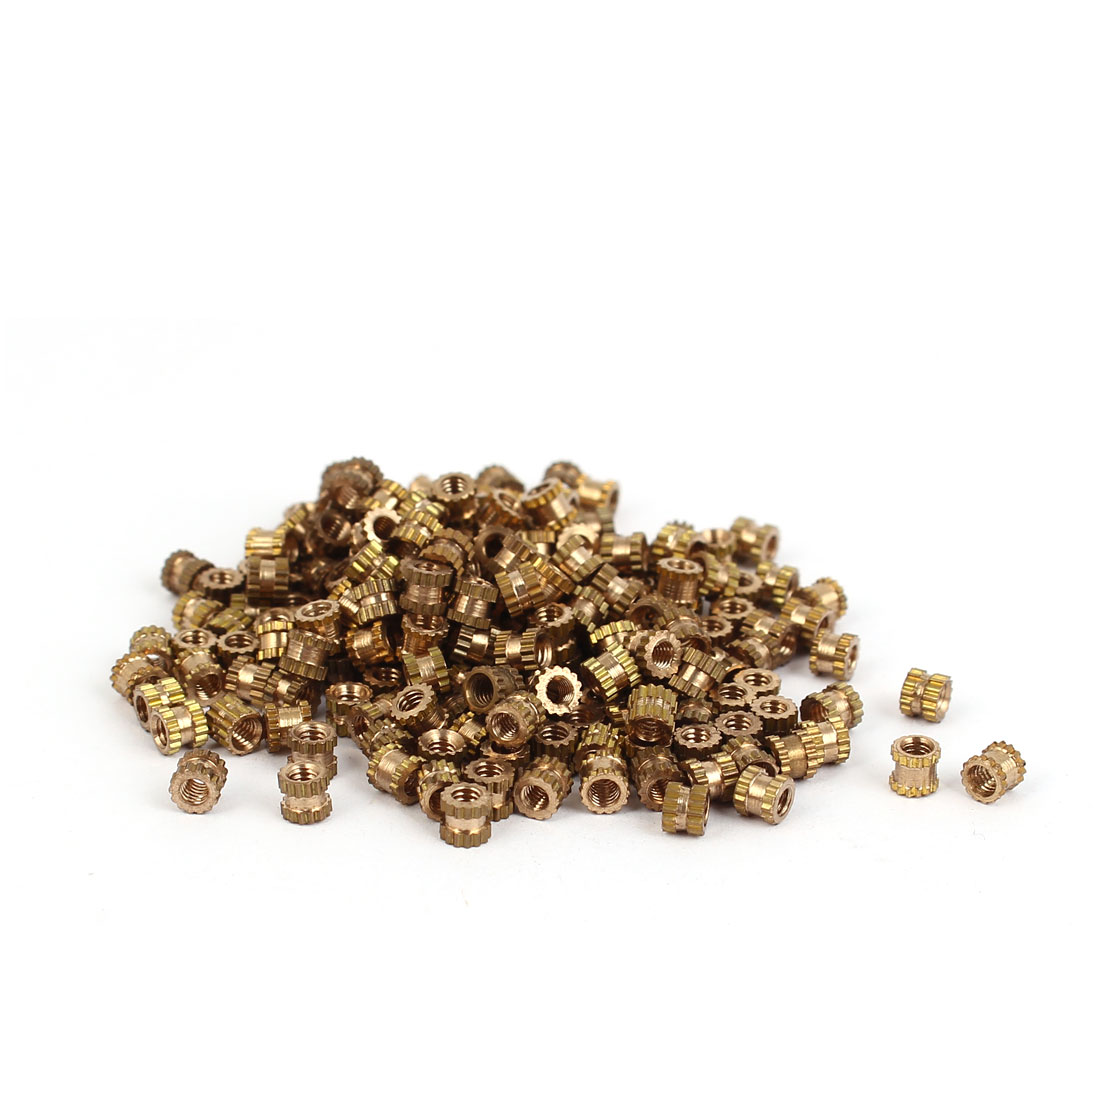 M2 x 3mm Brass Cylinder Injection Molding Knurled Insert Embedded Nuts 200PCS